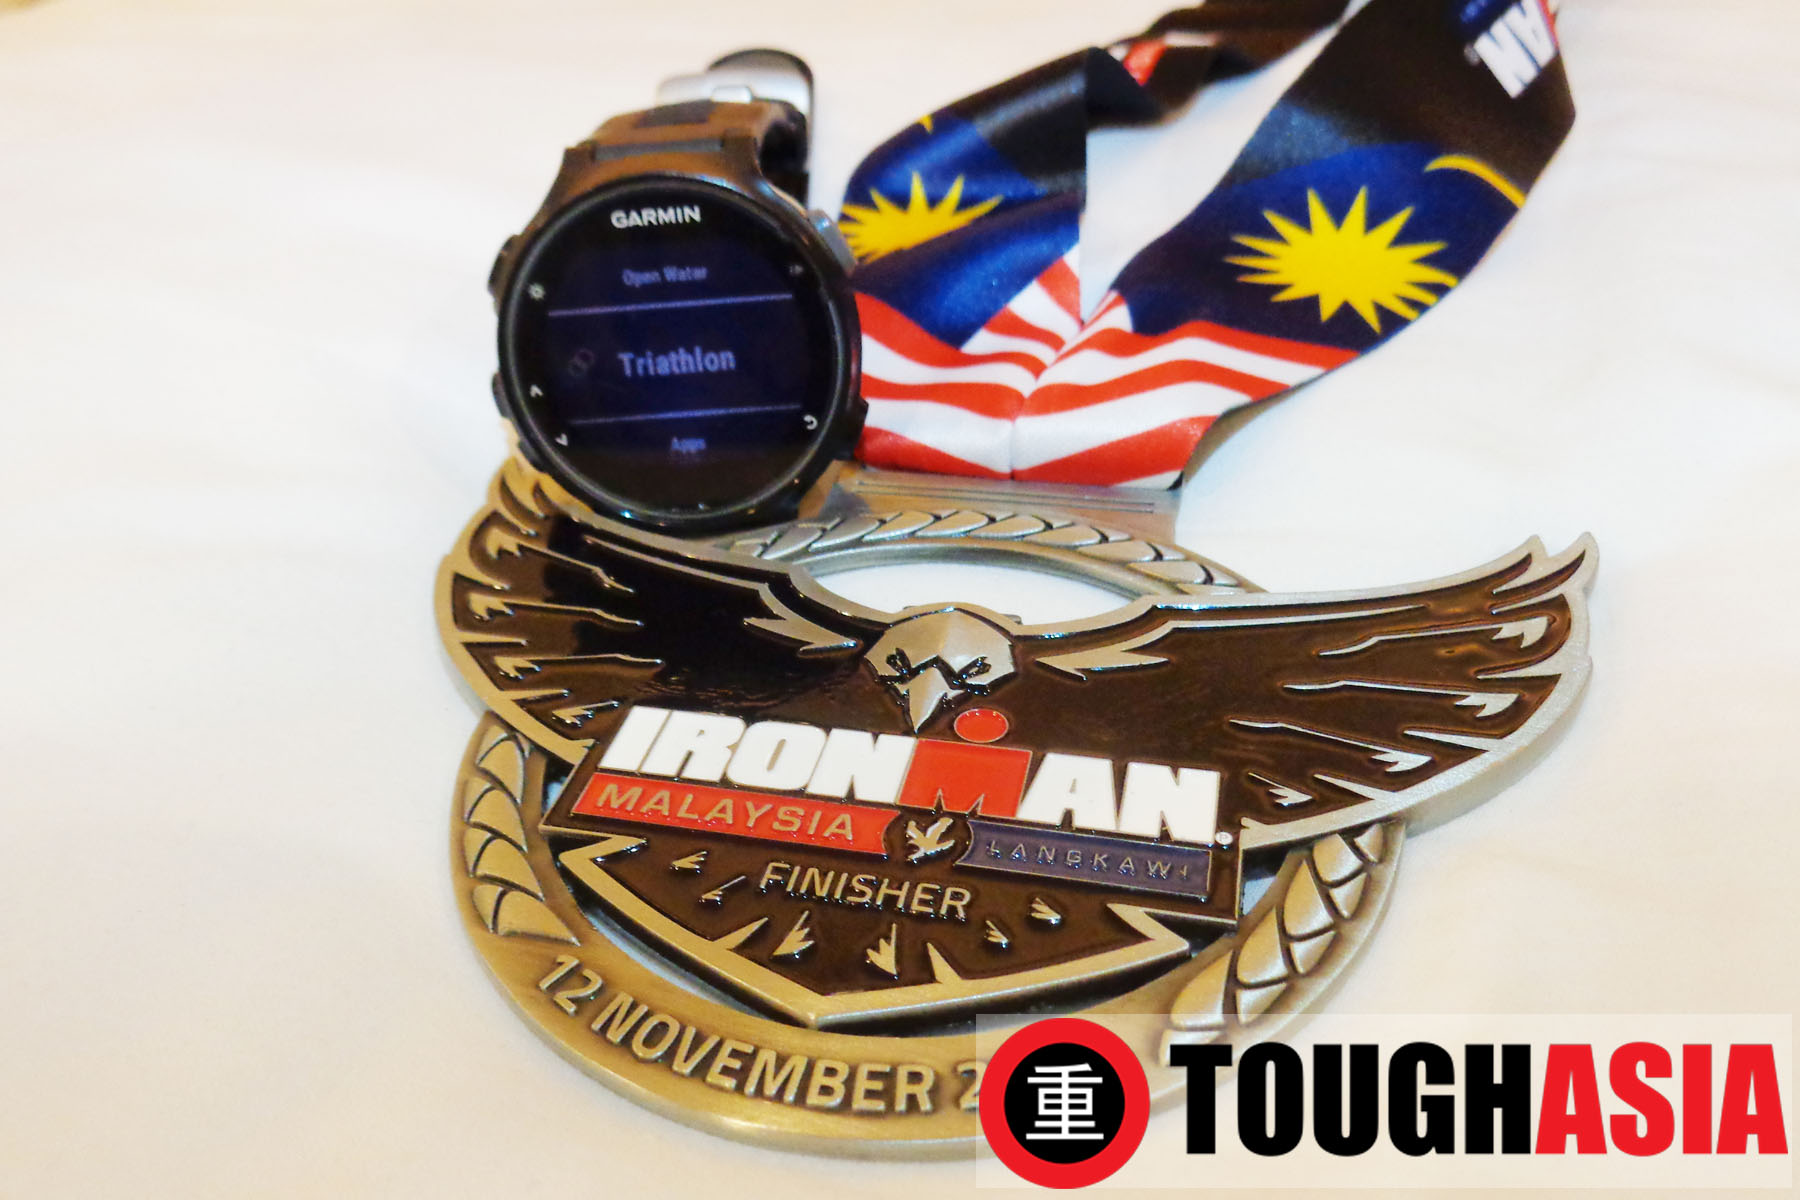 Highly coveted and hard earned maide Ironman Malaysia medal for Richard Lee alongside his loyal training buddy, Garmin Forerunner 735XT.